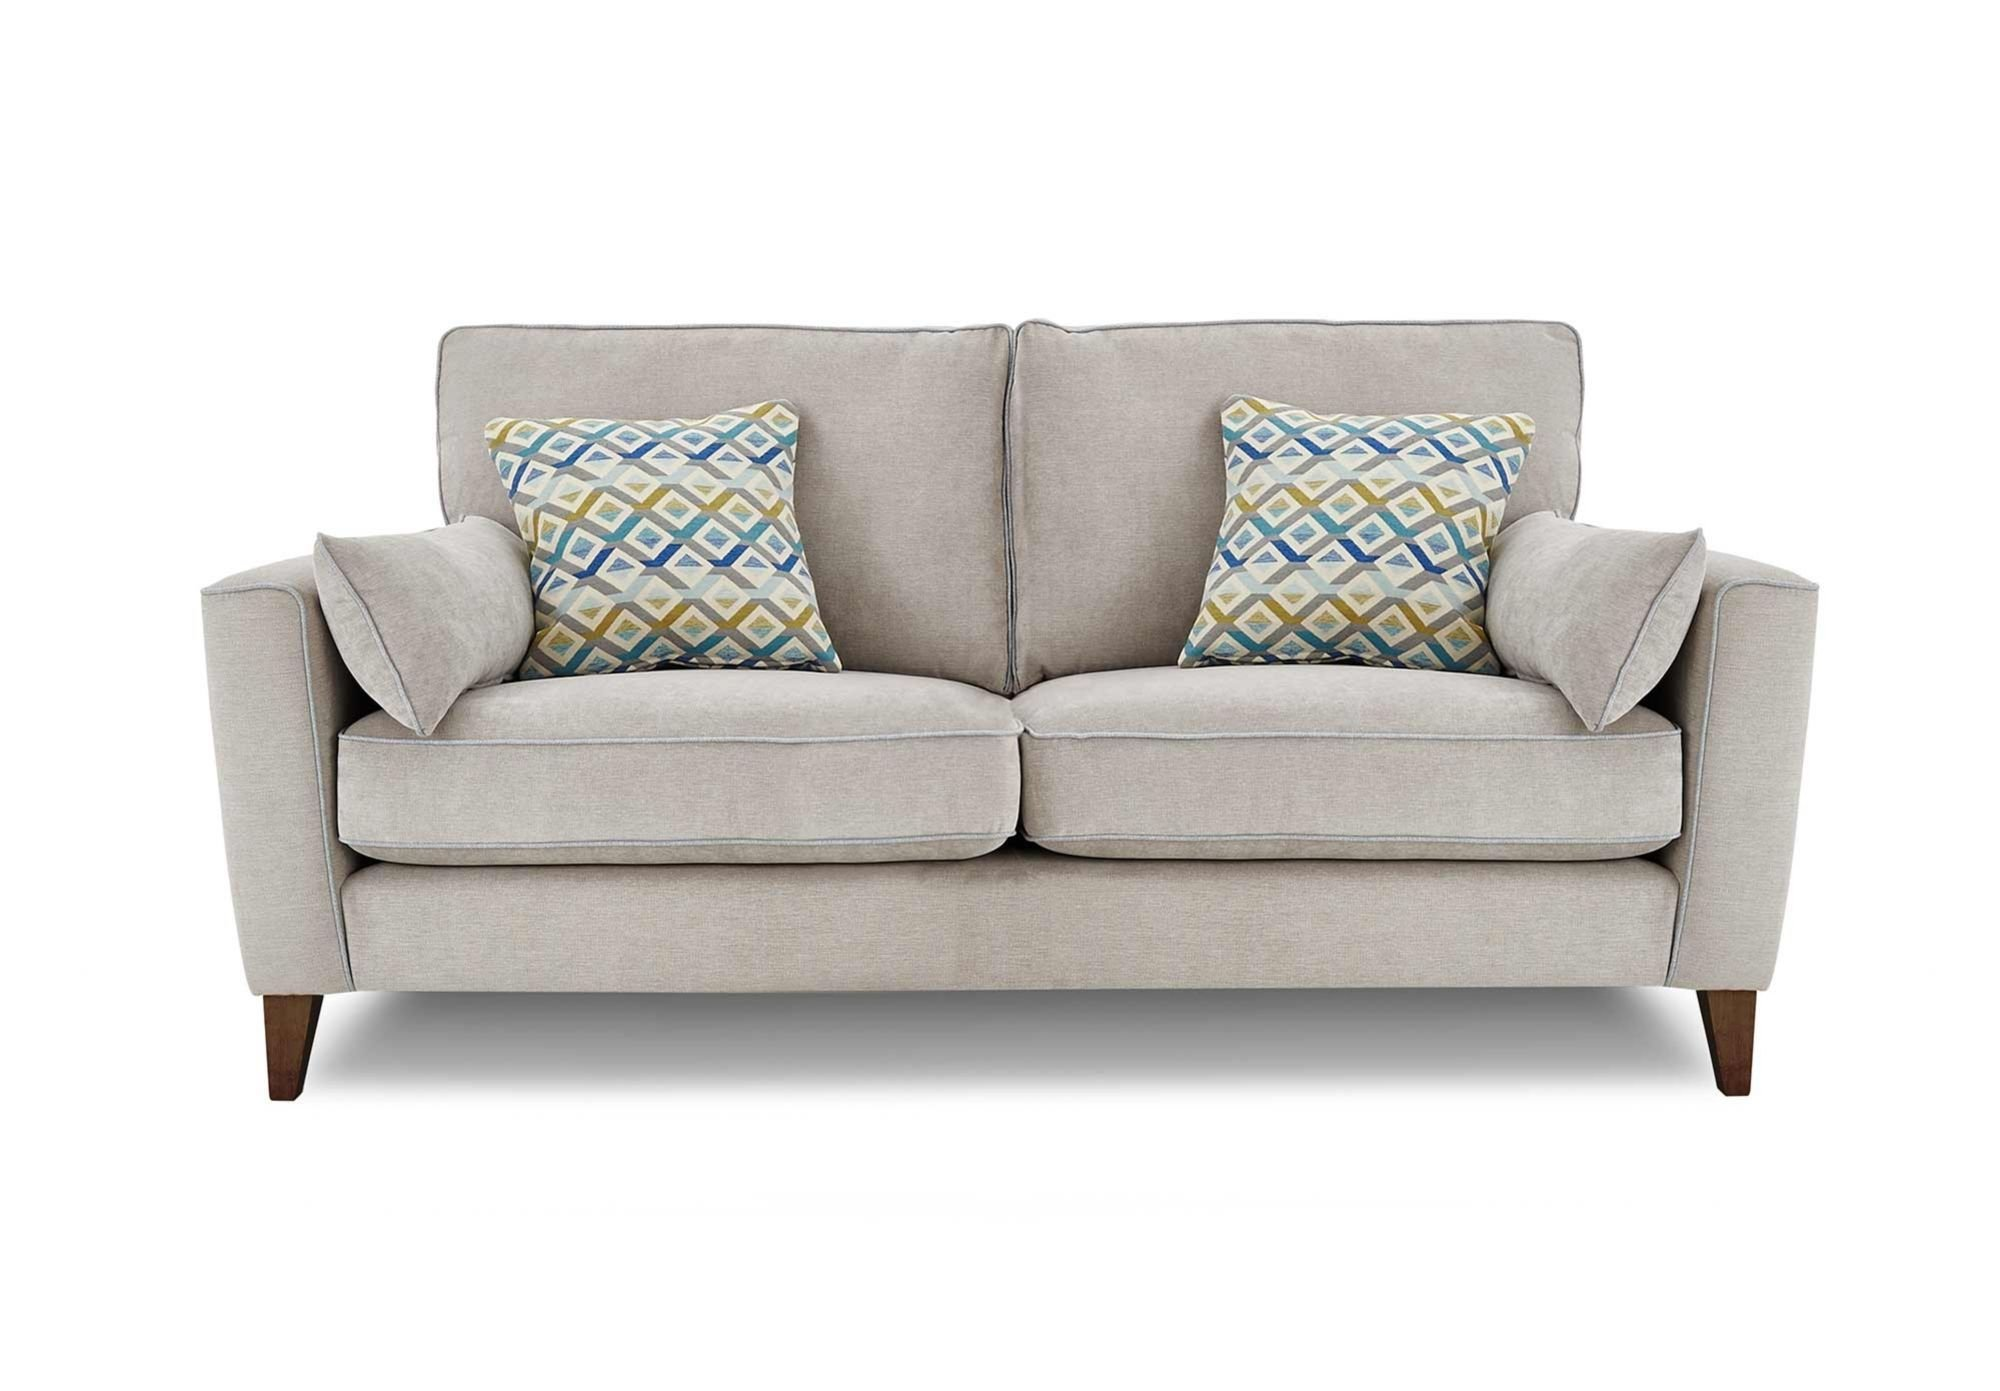 Best Two Seater Sofa Silfre Inside 2 Seat Sofa On Sale With With Pictures